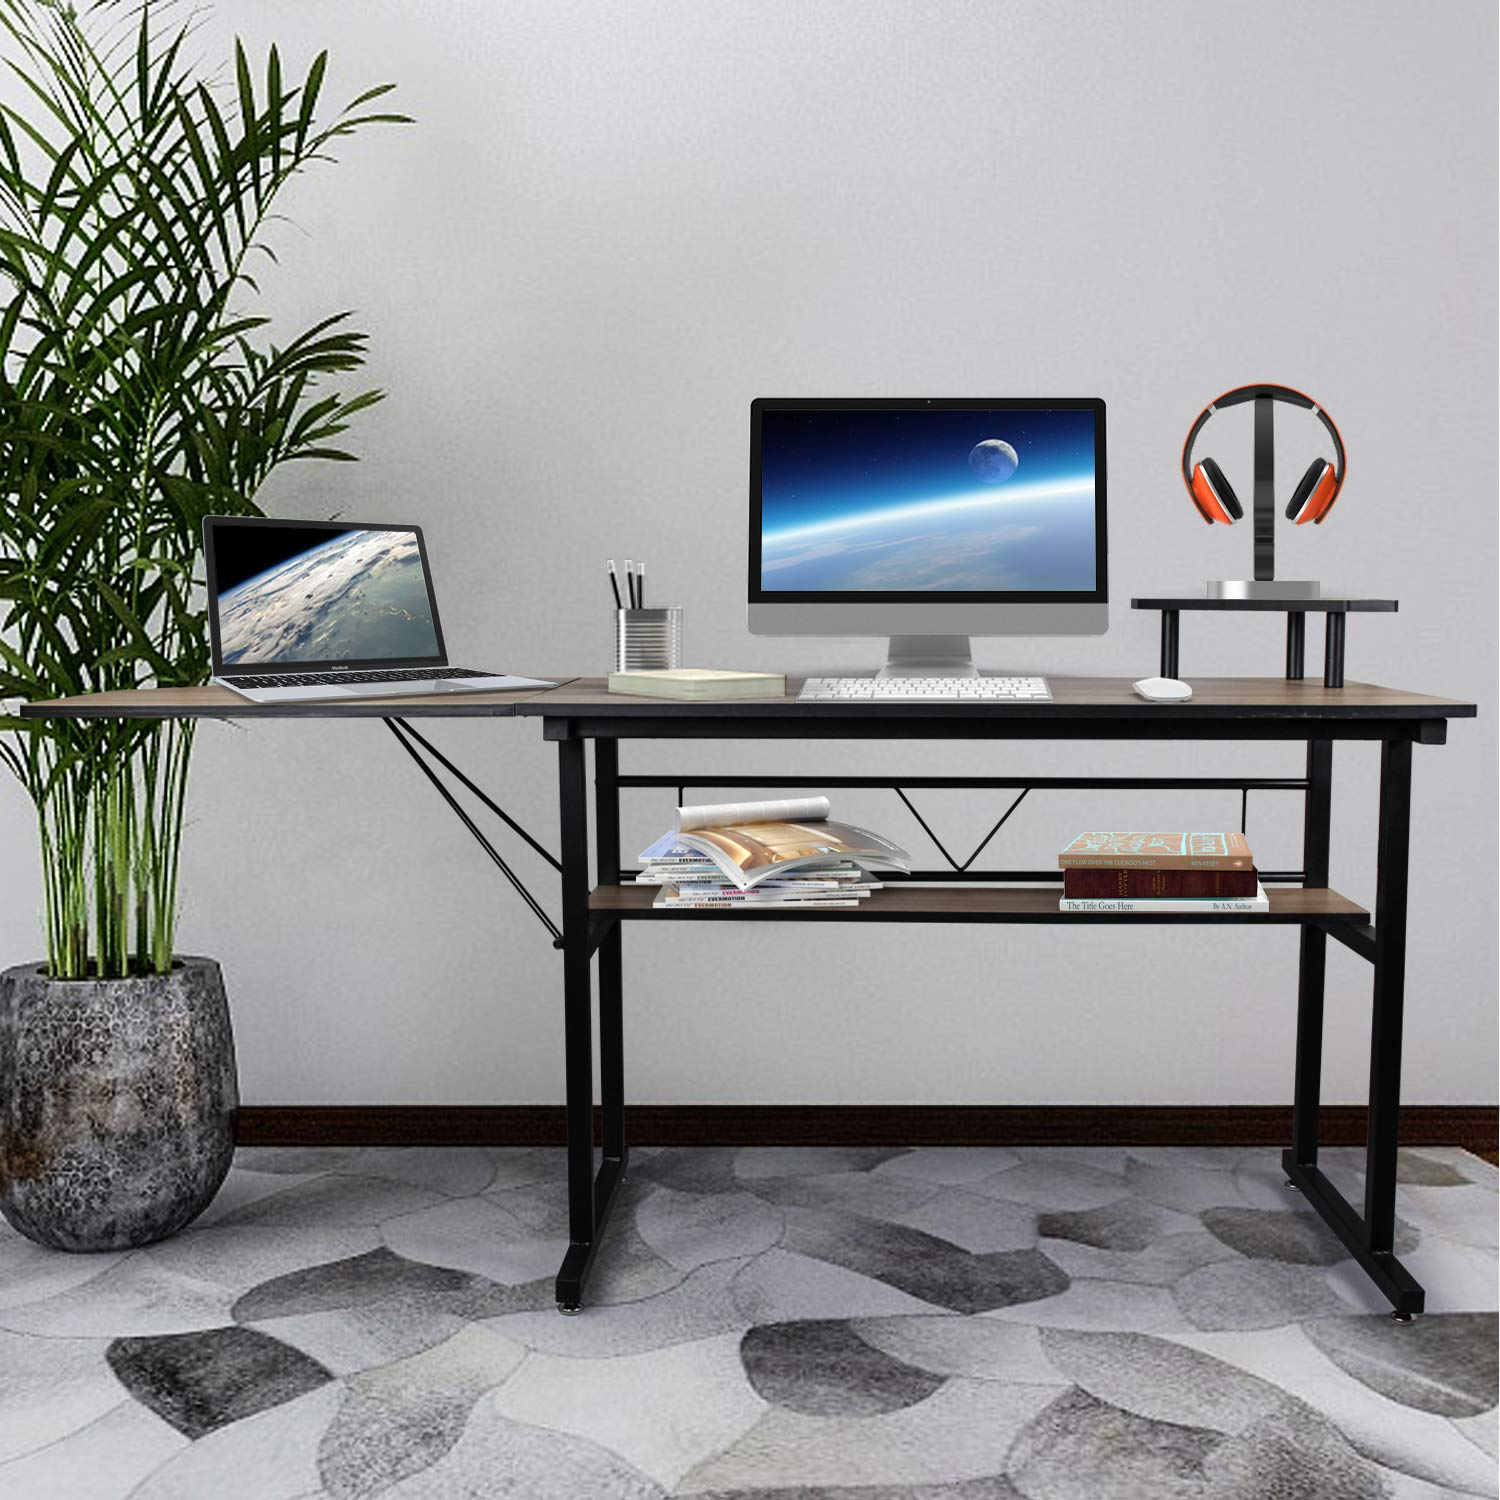 67 Large Computer Desk Writing Table, Study Writing Modern Table with Shelf Board, PC Laptop Office Desk, Multipurpose Workstation for Home and Office, Gaming Computer Desk